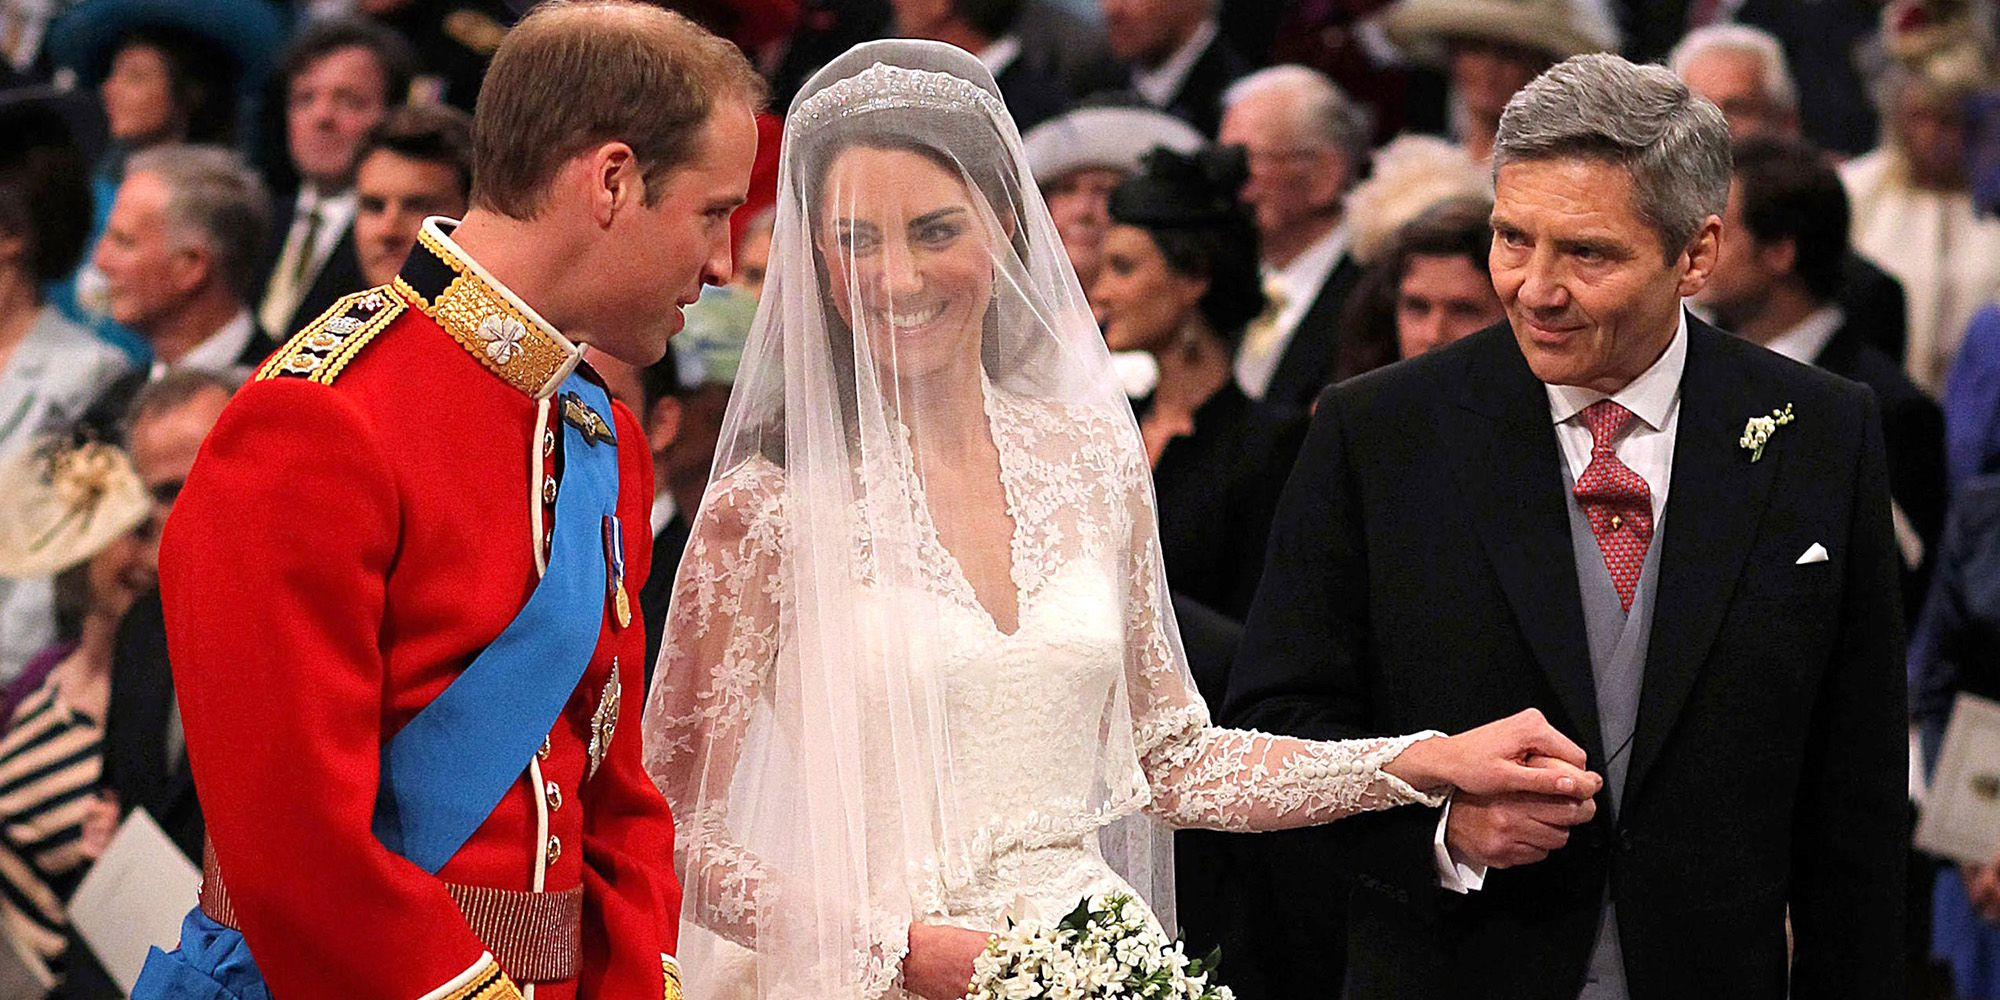 Royal Weddings facts